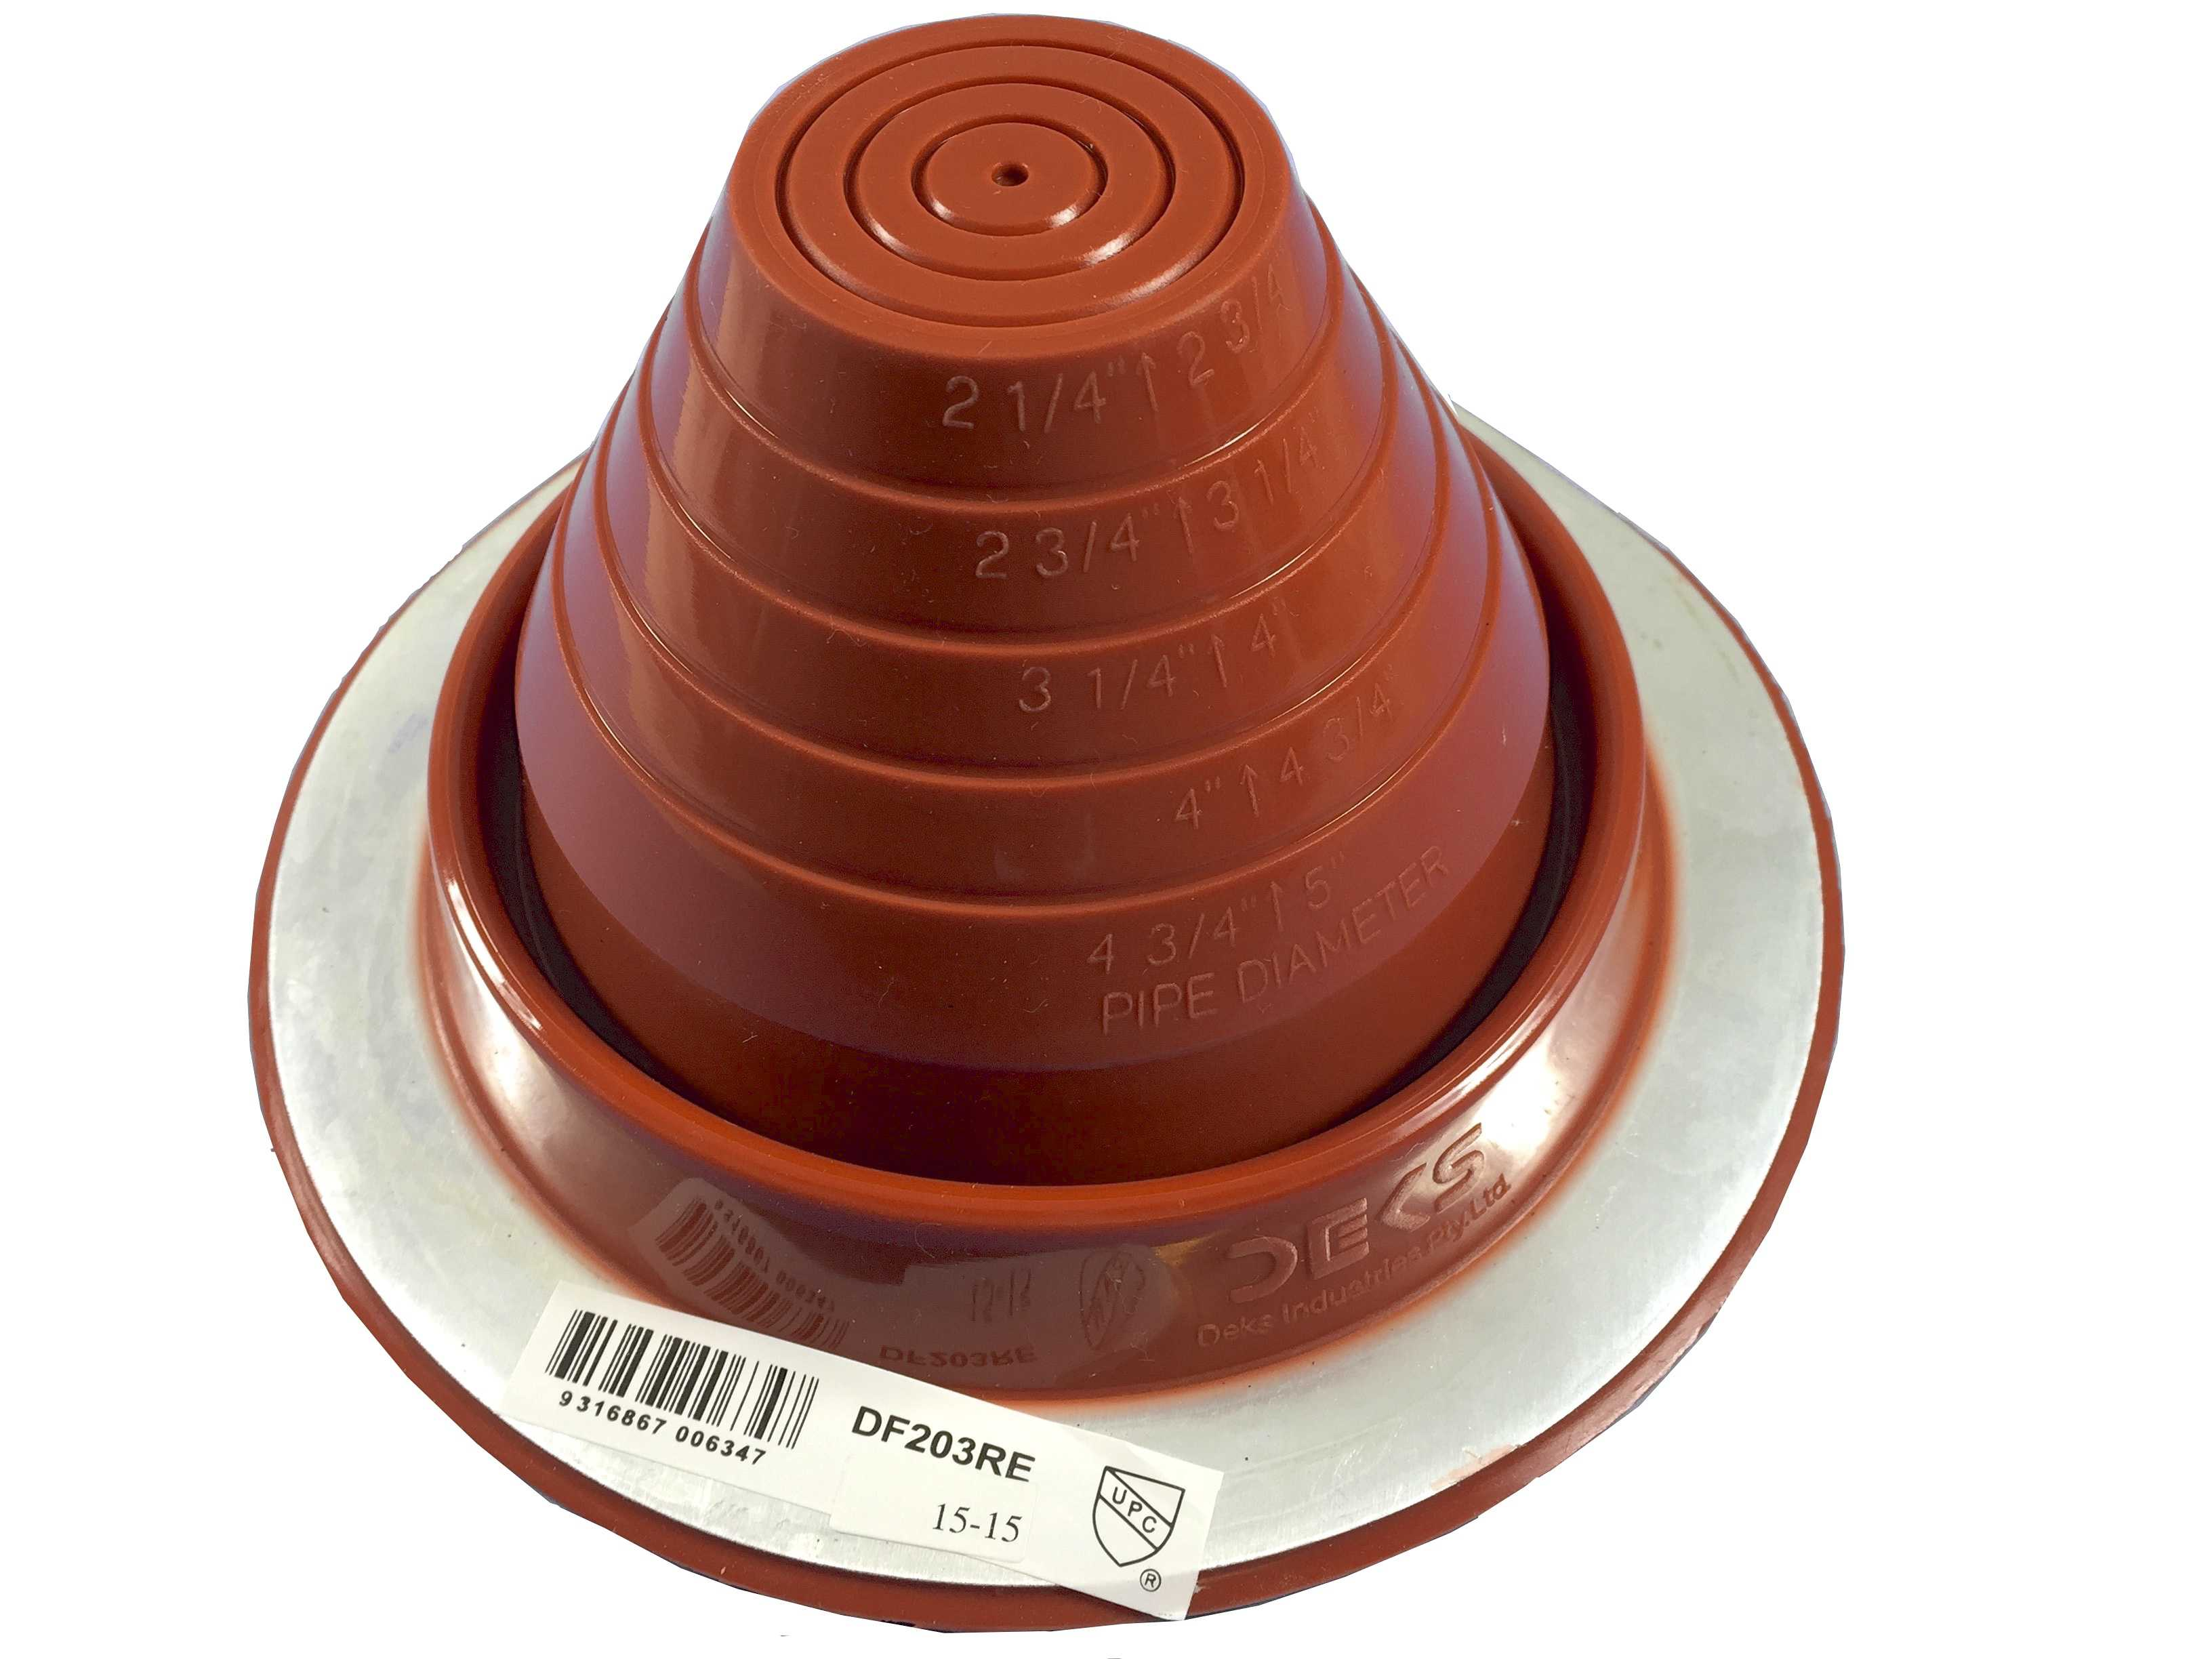 DEKTITE ROUND BASE METAL ROOFING PIPE FLASHING BOOT: #3 RED High Temp Silicone Flexible Pipe Flashing Dektite (for OD pipe sizes 1/4' - 5') - Metal Roof Jack Pipe Boot - Metal Roofing Pipe Flashing